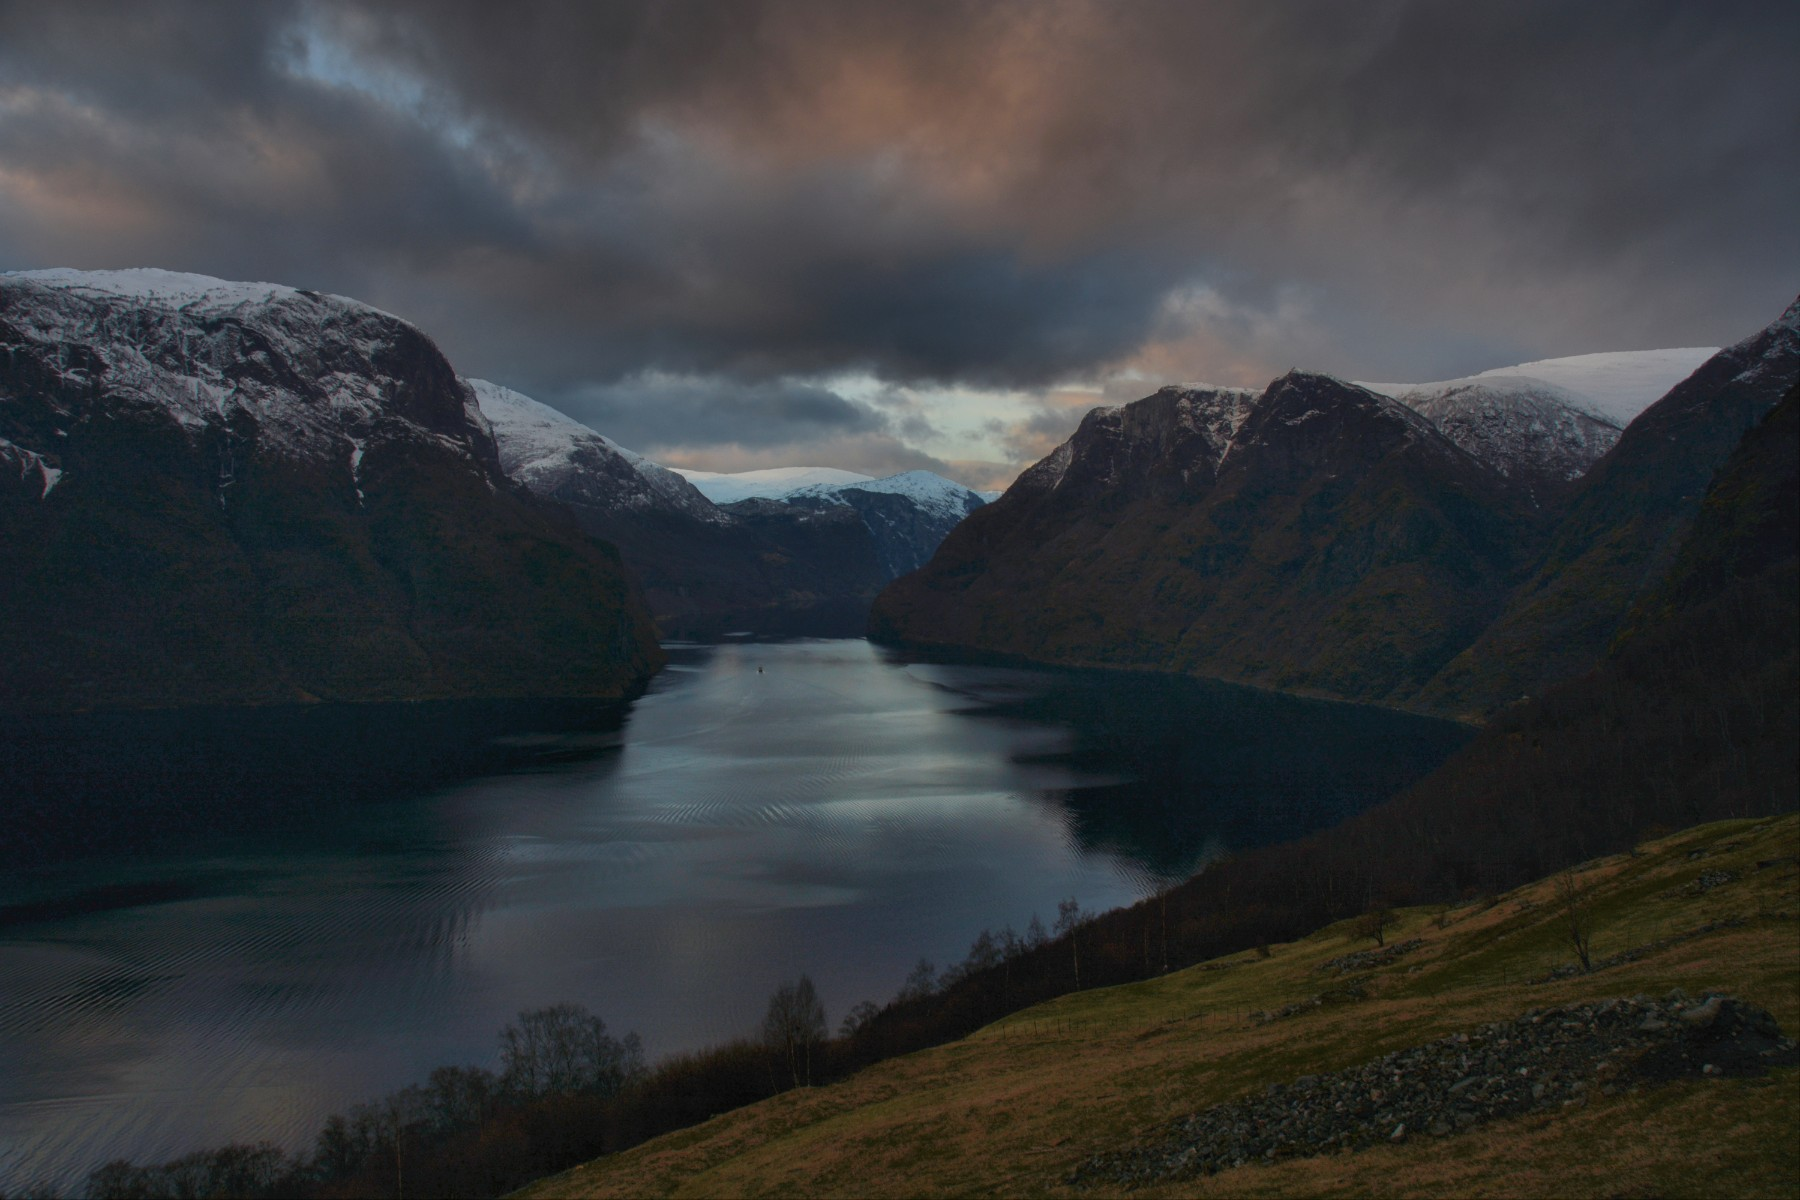 Moody sunset over Aurlandsfjord